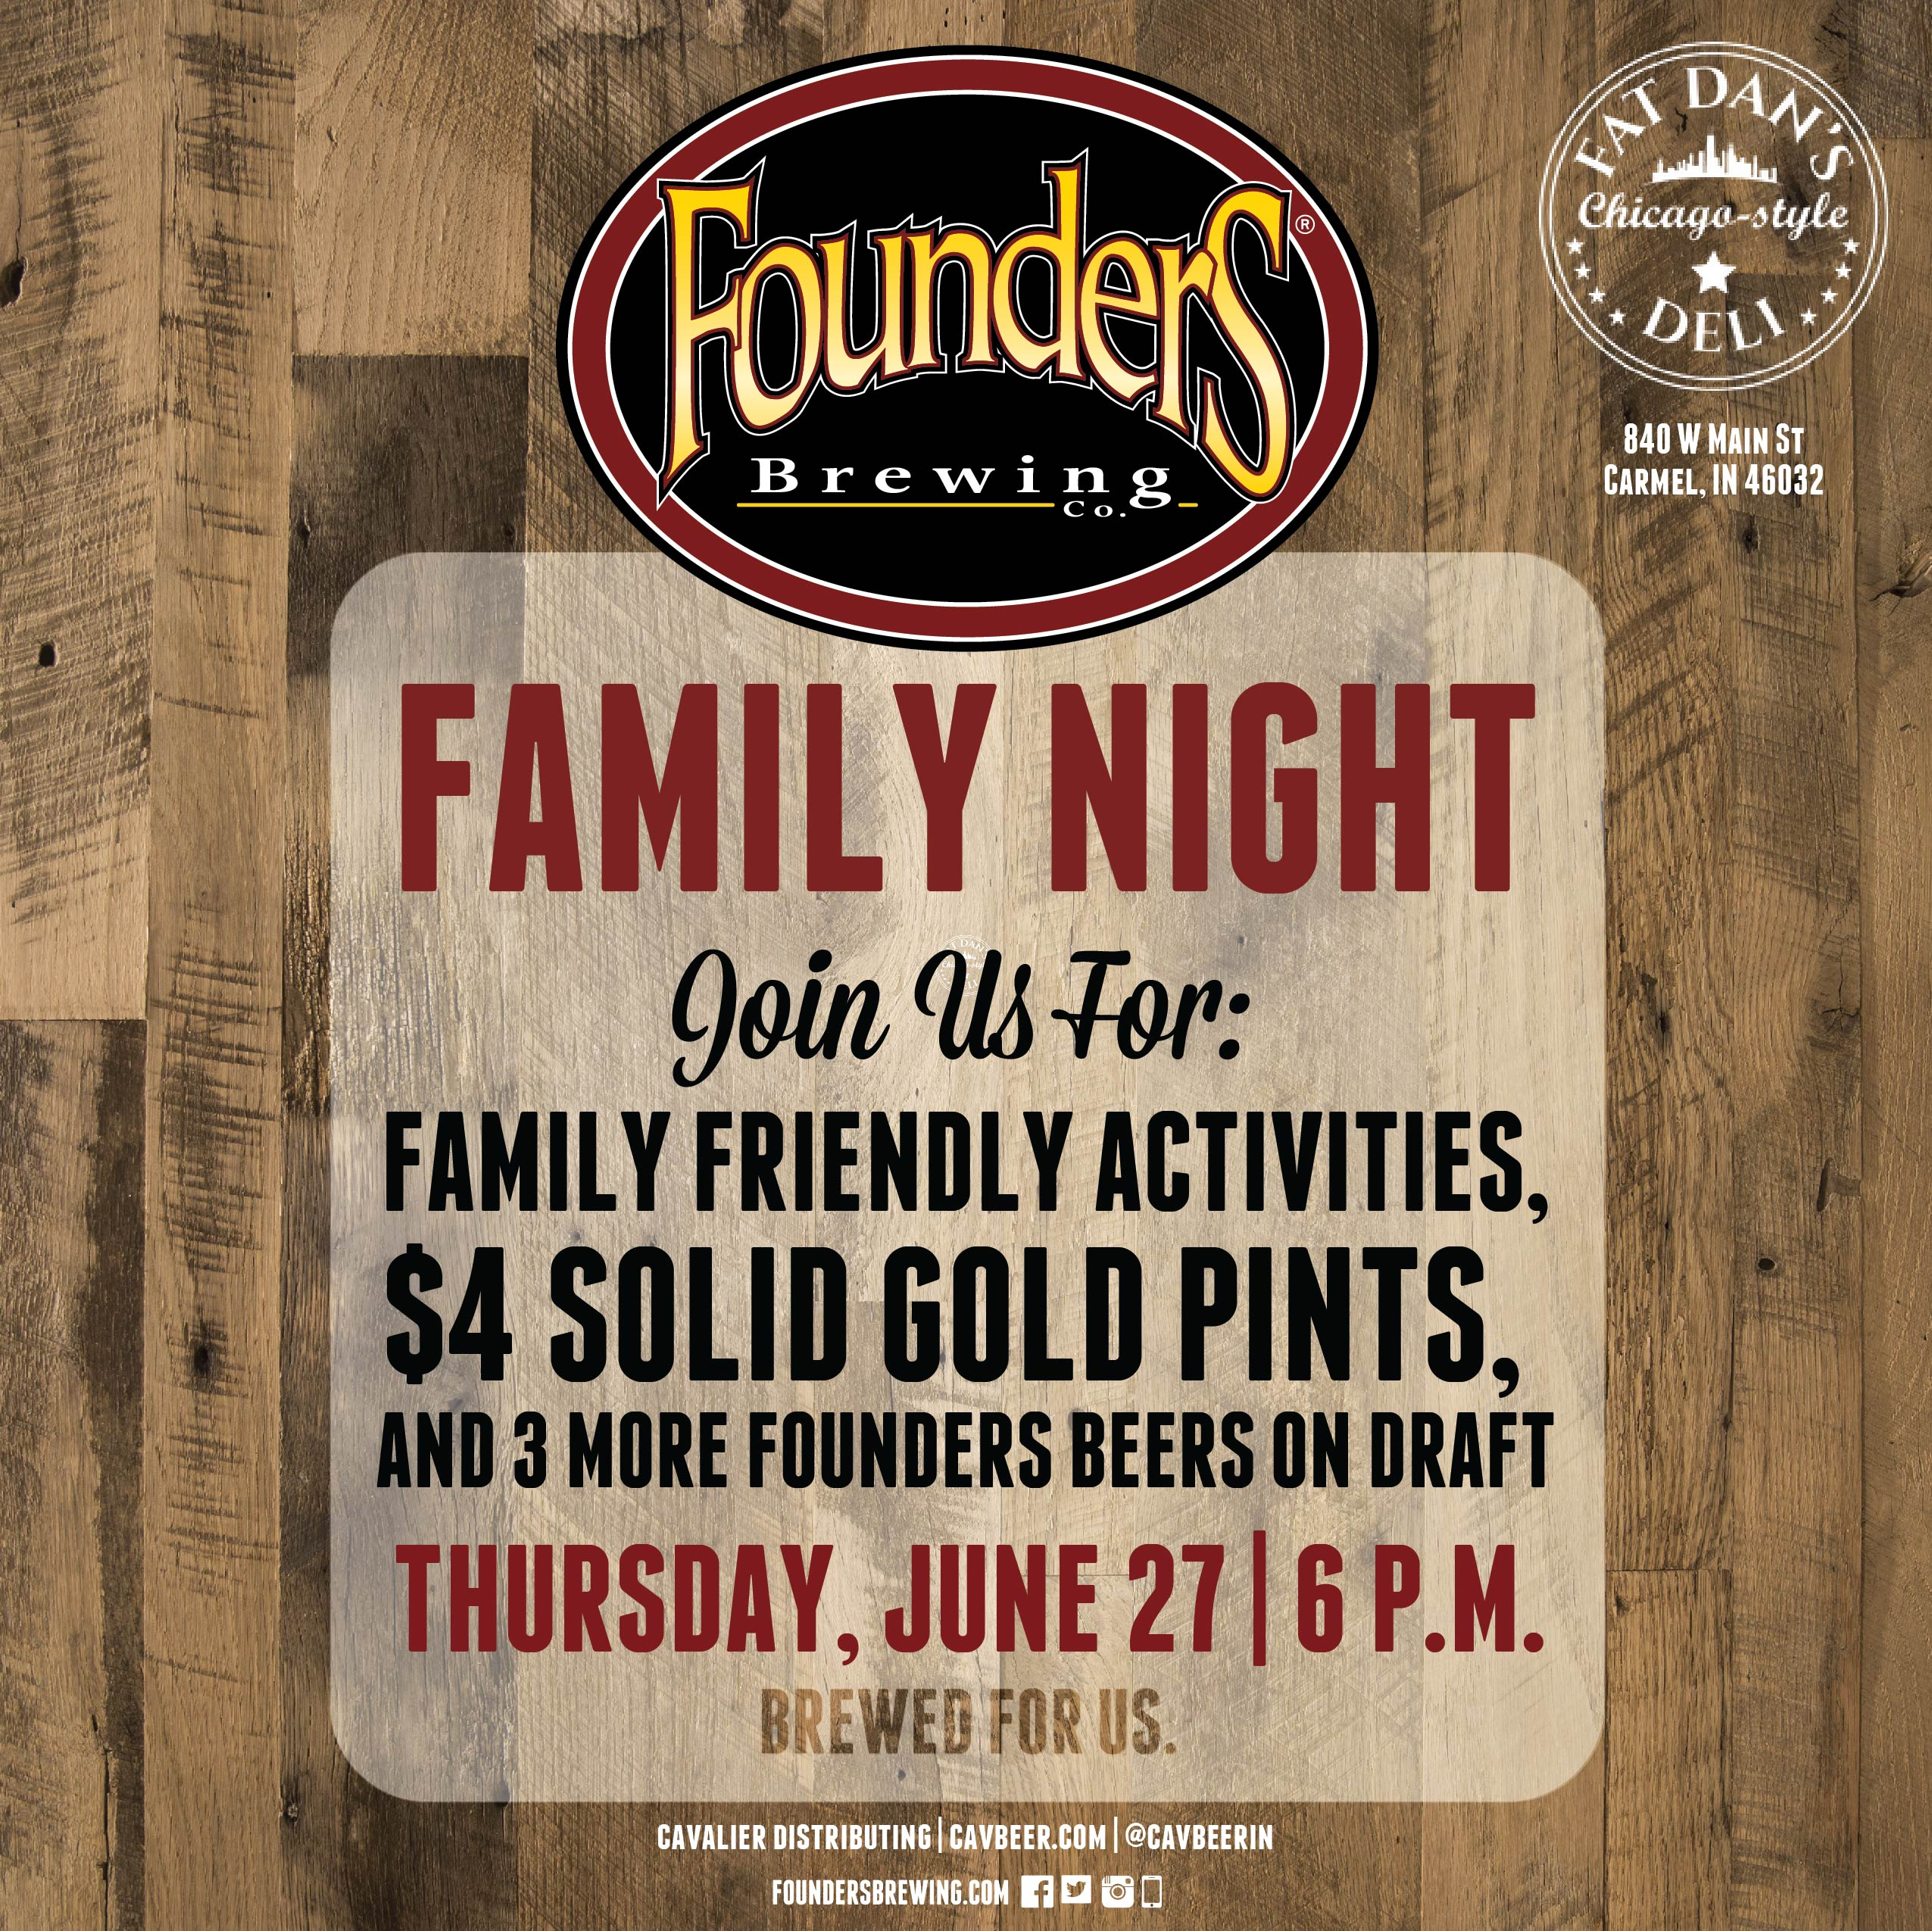 Founder's Family Night @ Fat Dan's Deli